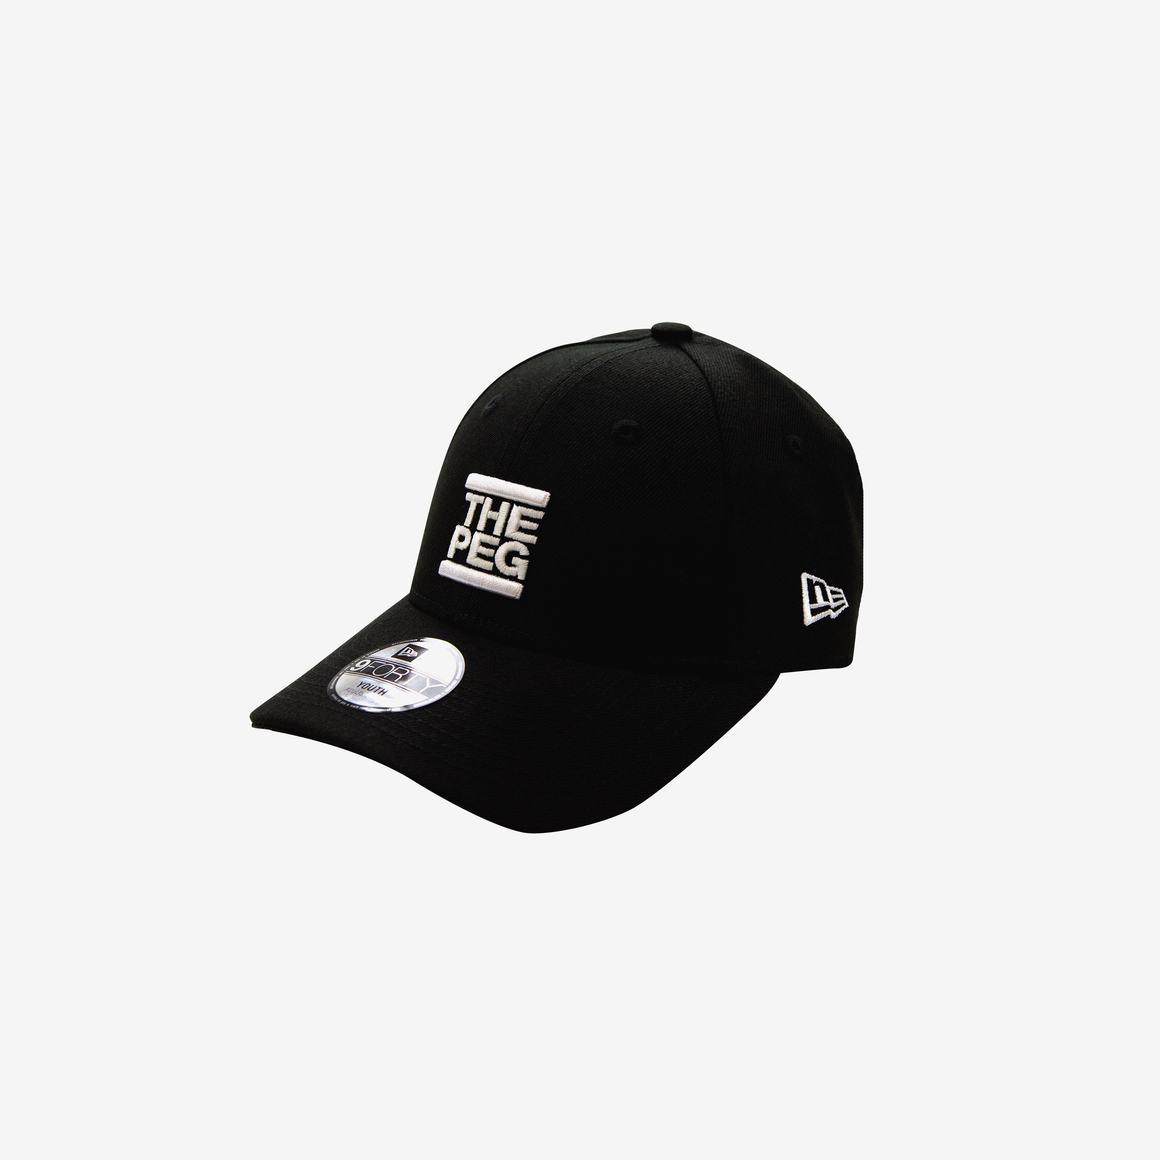 New Era 9FORTY Youth Adjustable Cap (Black)